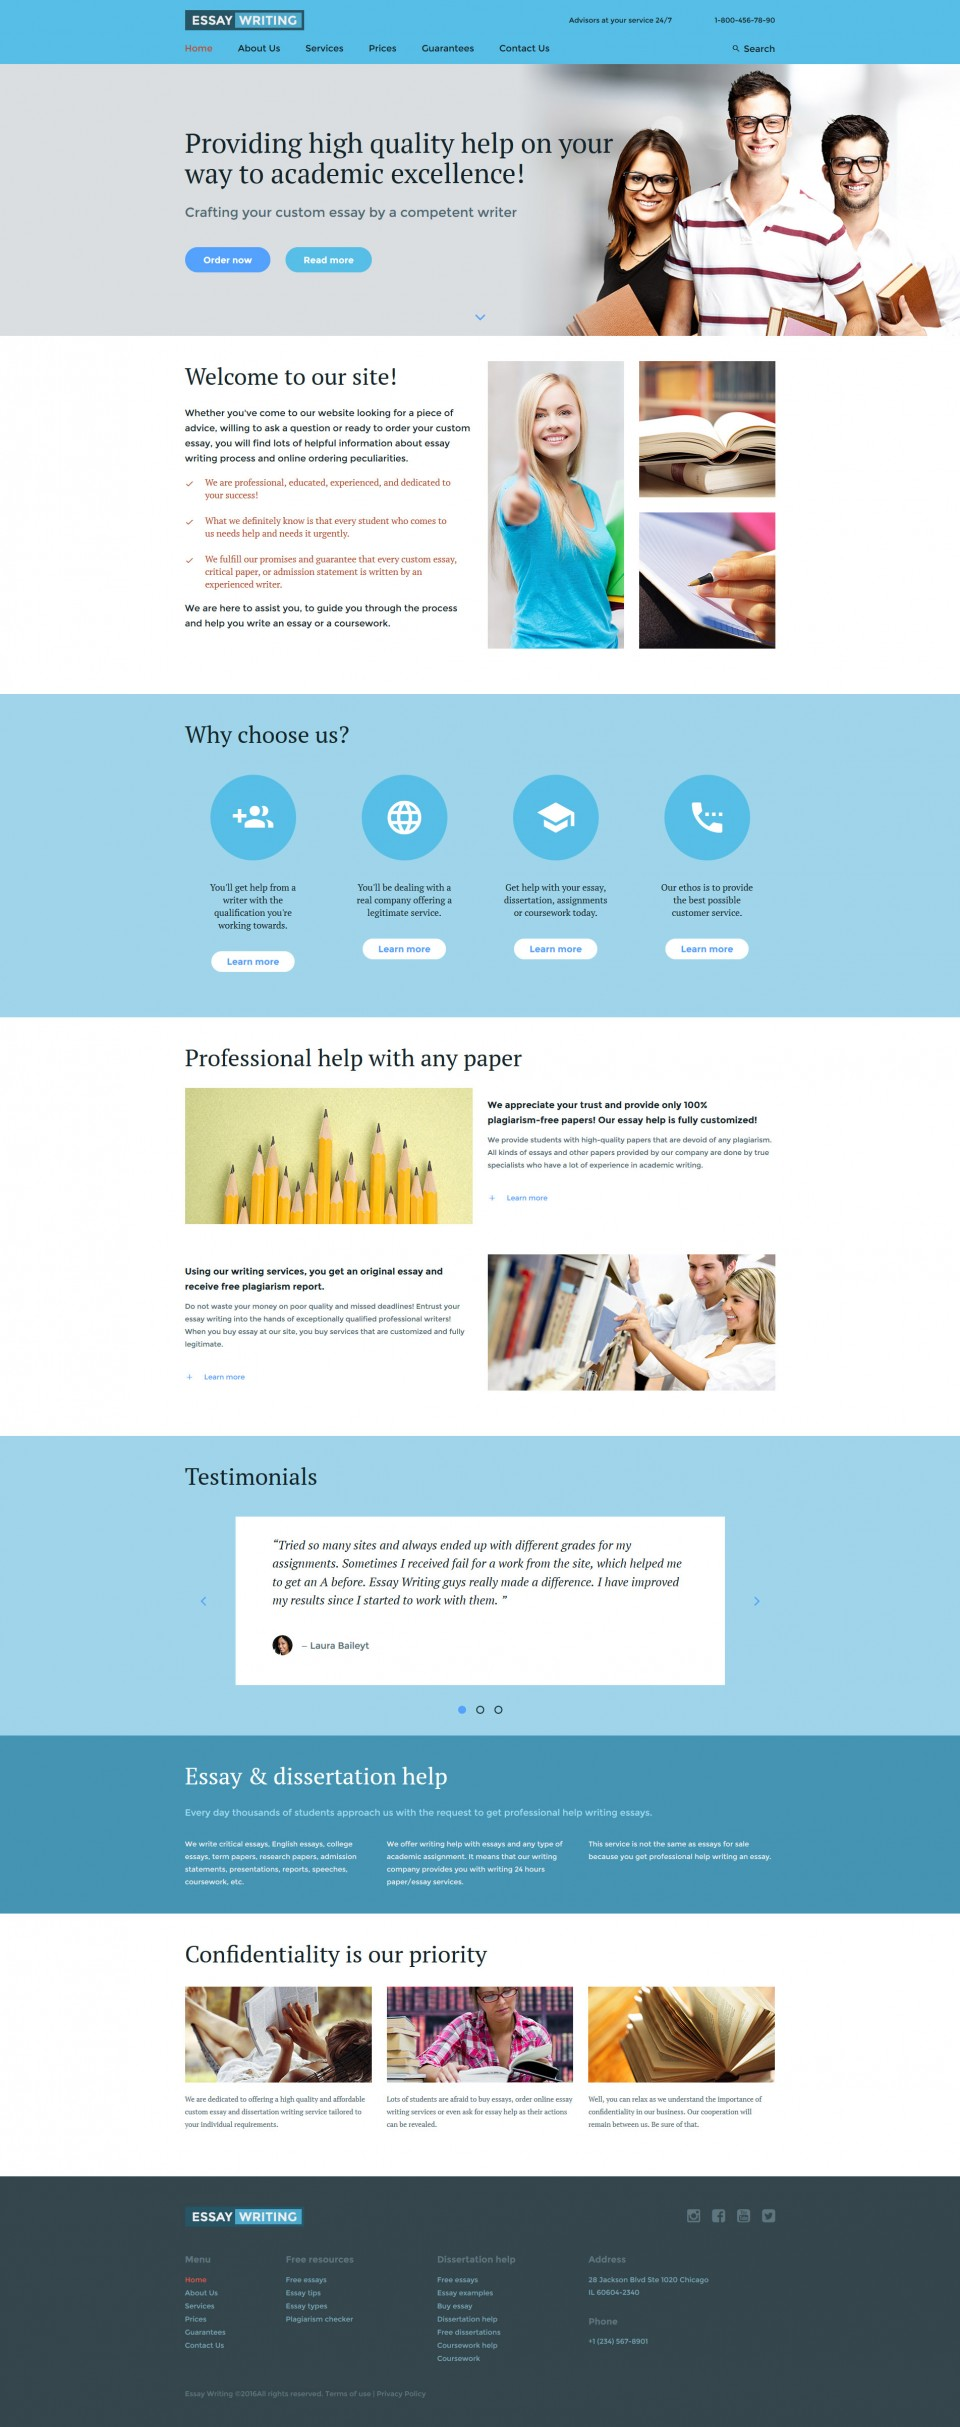 003 Essay Example Writing Website Template 59201 Amazing Websites Reviews Free 960